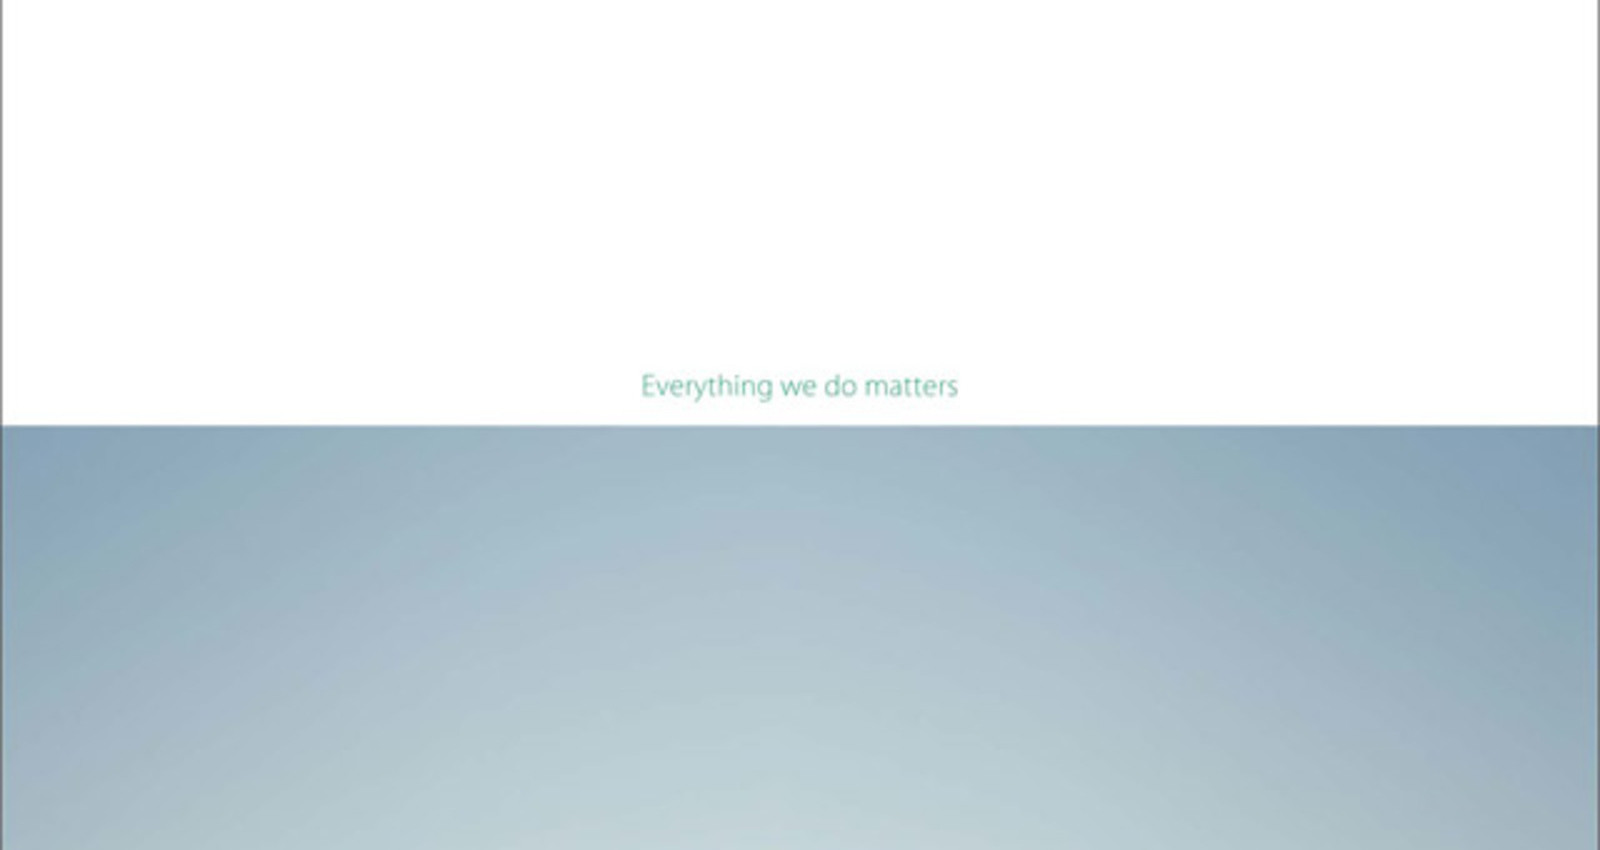 Everything we do matters